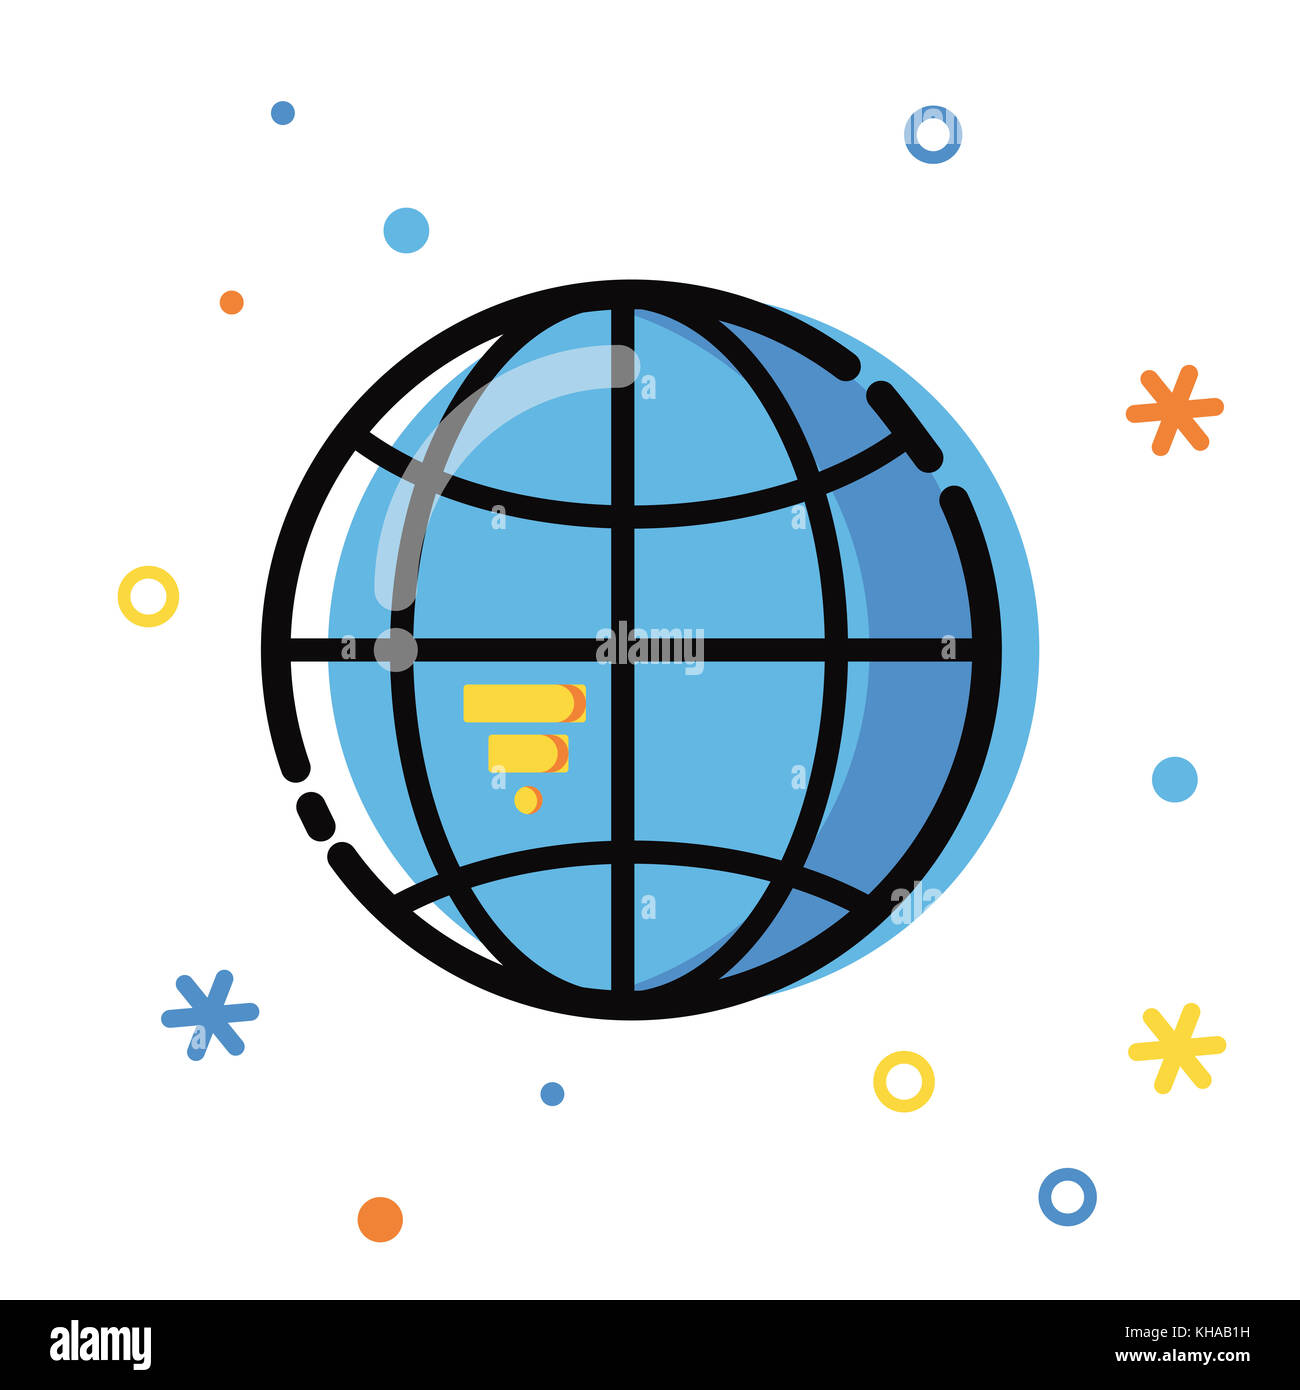 Line art flat Style illustration. Global application development, business and information. Icons and elements collection. - Stock Image